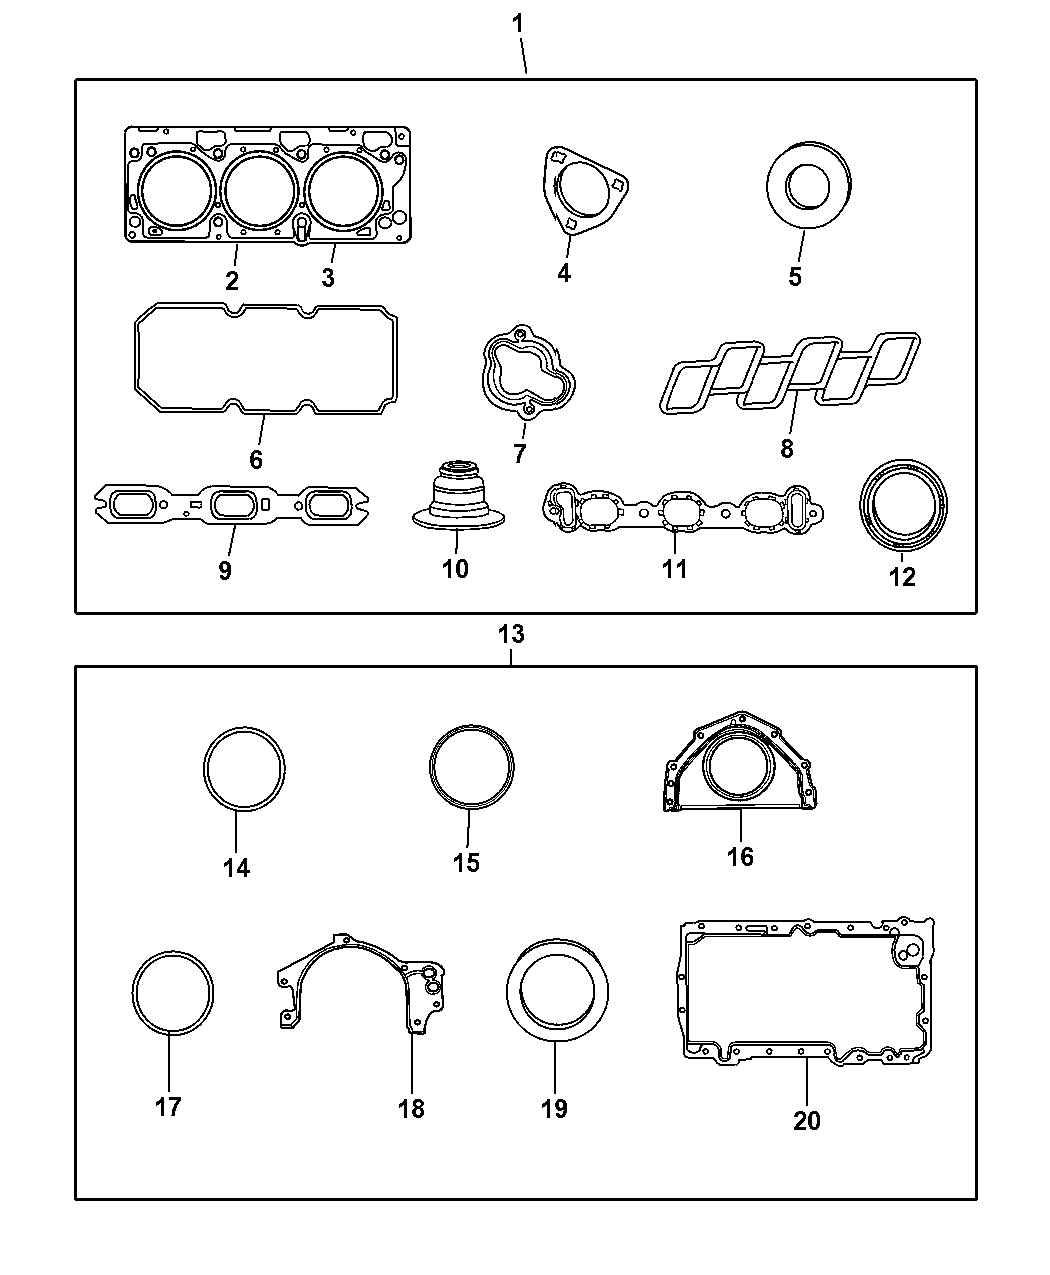 2009 Chrysler Sebring Engine Gasket Kits Mopar Parts Giant Diagram Thumbnail 1